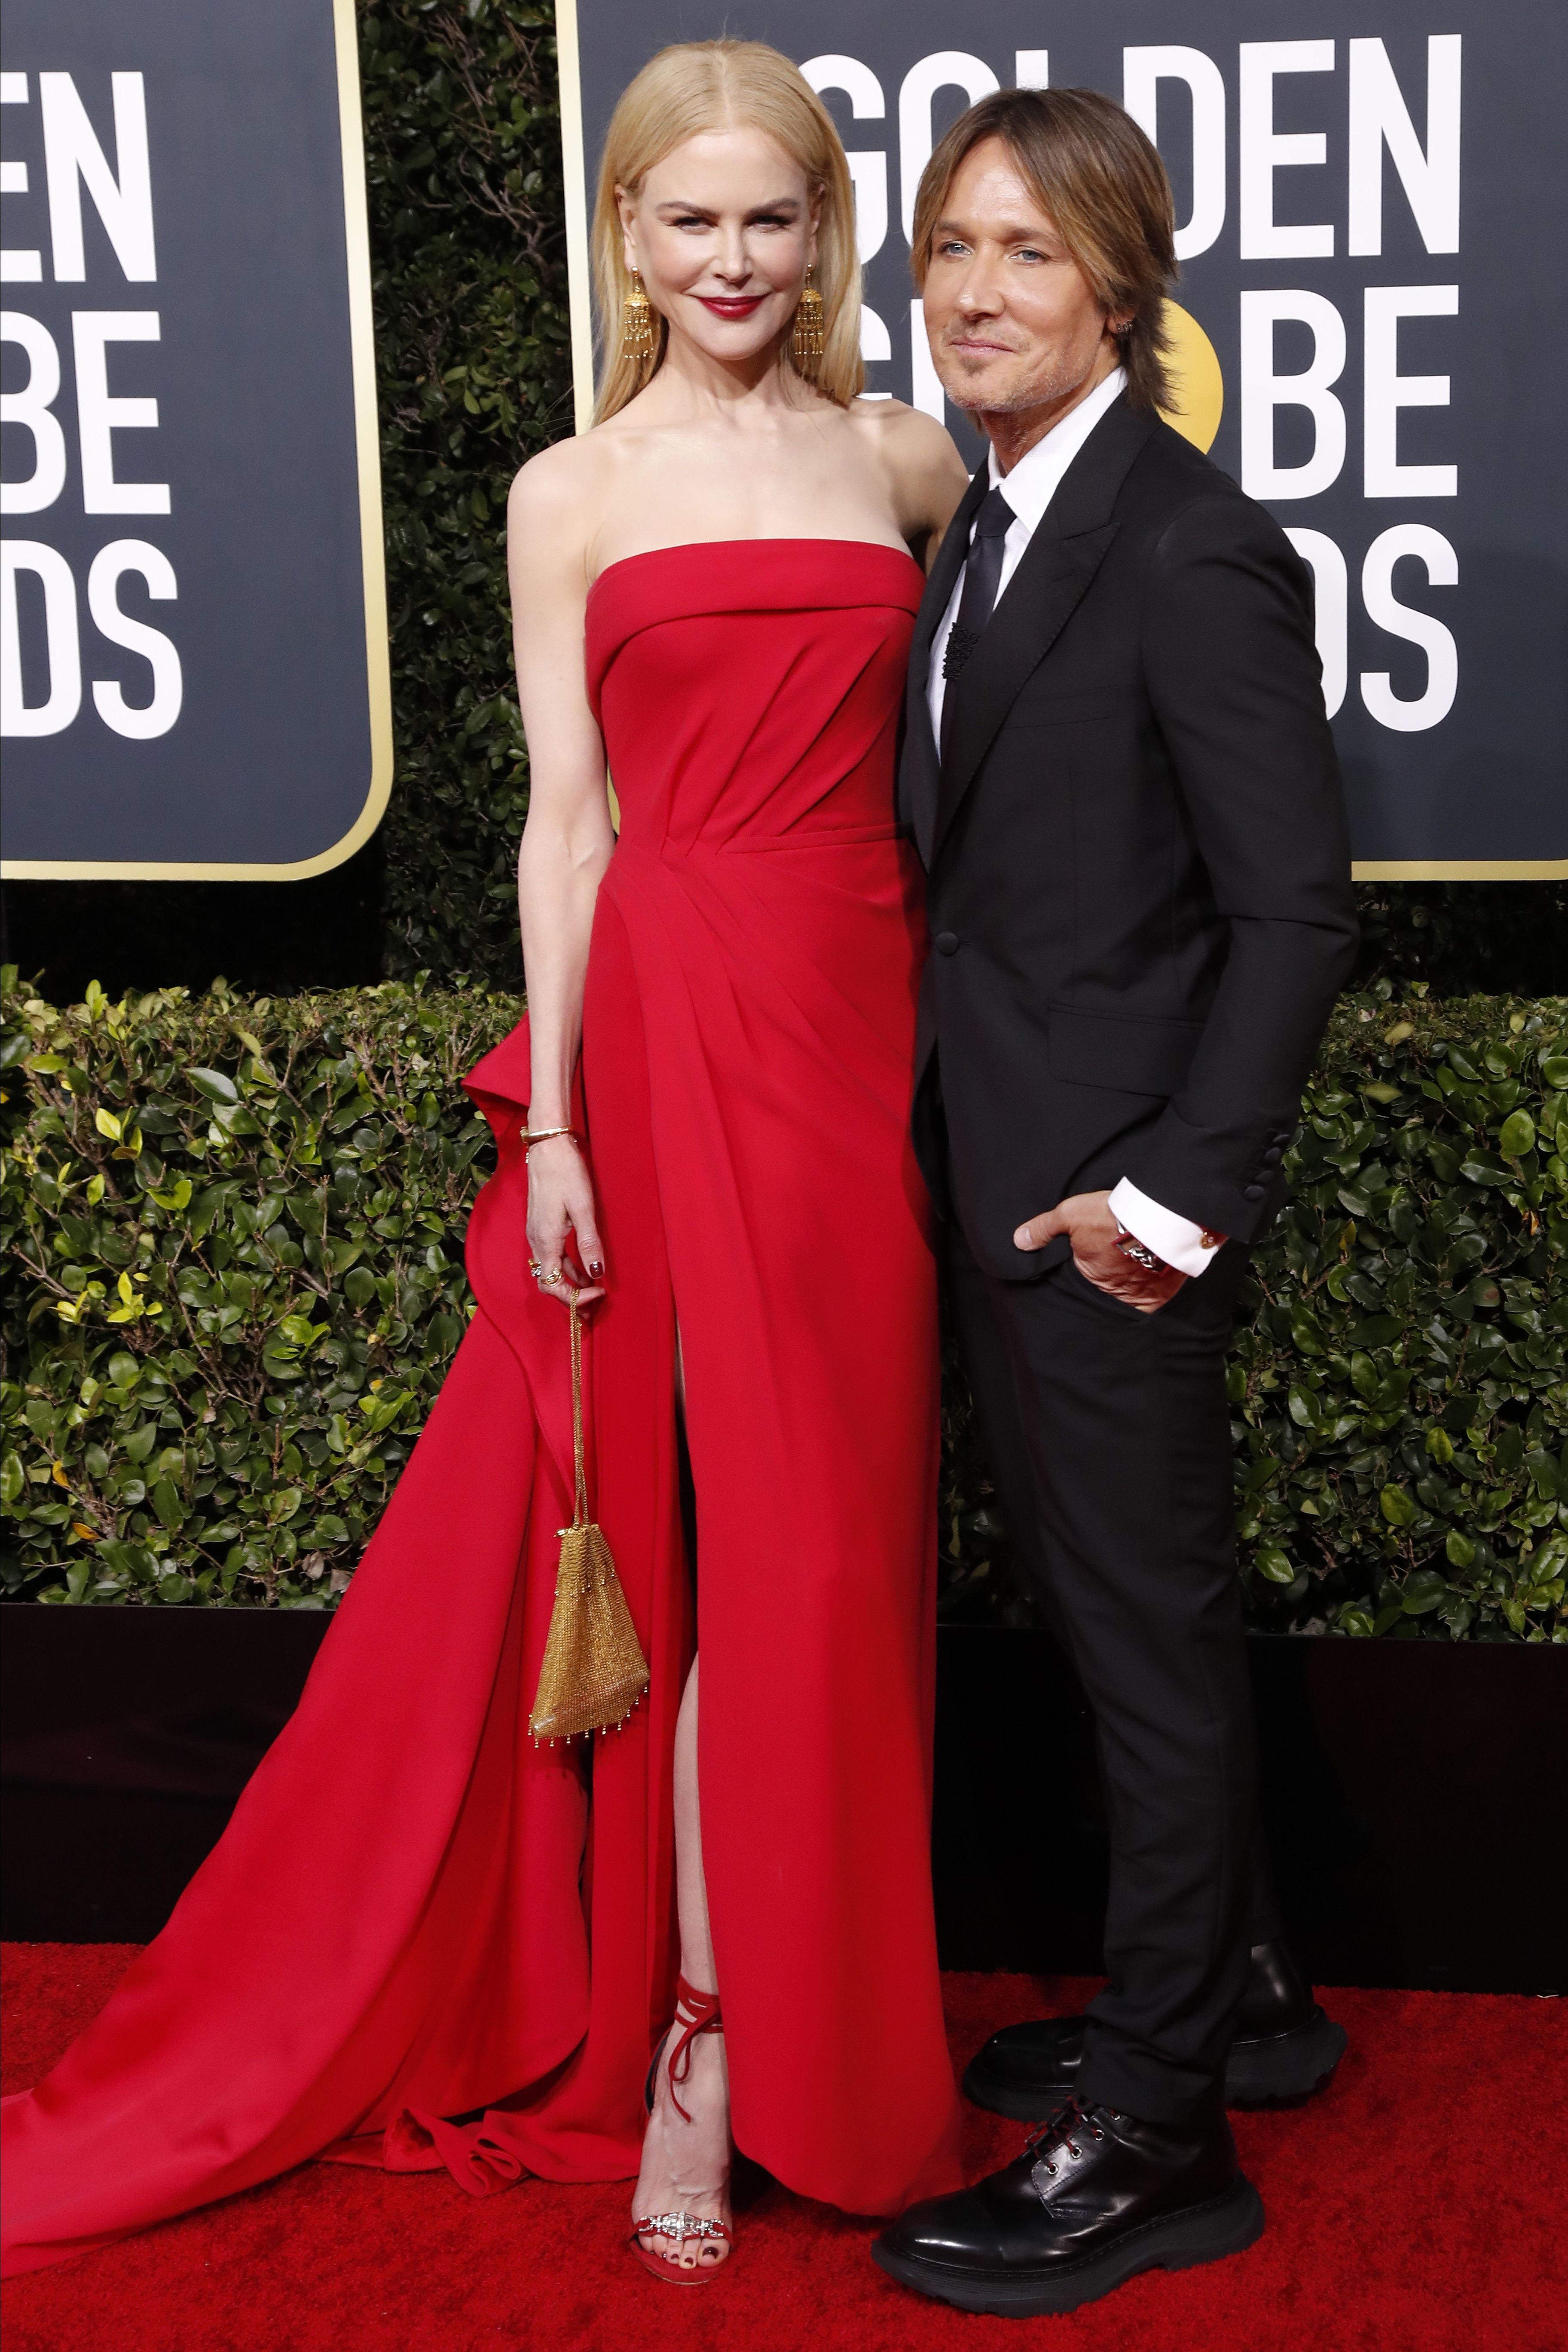 Nicole Kidman and Keith Urban arrive for the 77th annual Golden Globe Awards ceremony at the Beverly Hilton Hotel, in Beverly Hills, California, USA, 05 January 2020.Arrivals - 77th Golden Globe Awards, Beverly Hills, USA - 05 Jan 2020